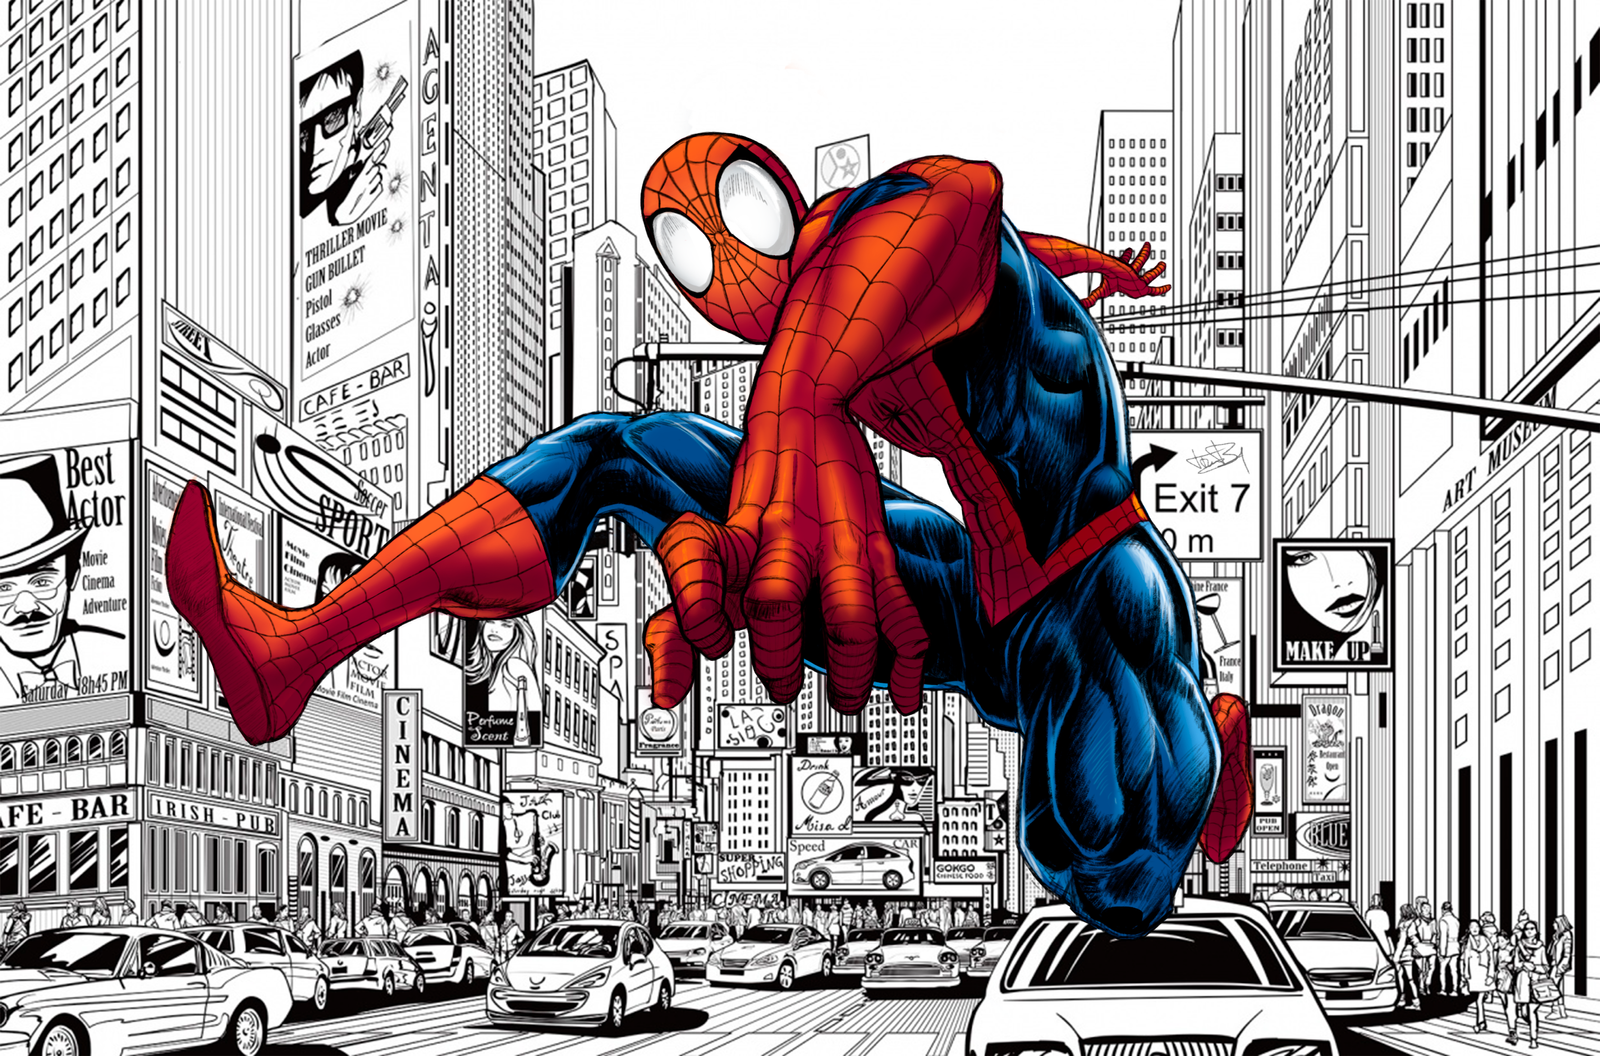 Spider man comic book style by kevinfrank123 on deviantart - Image spiderman ...